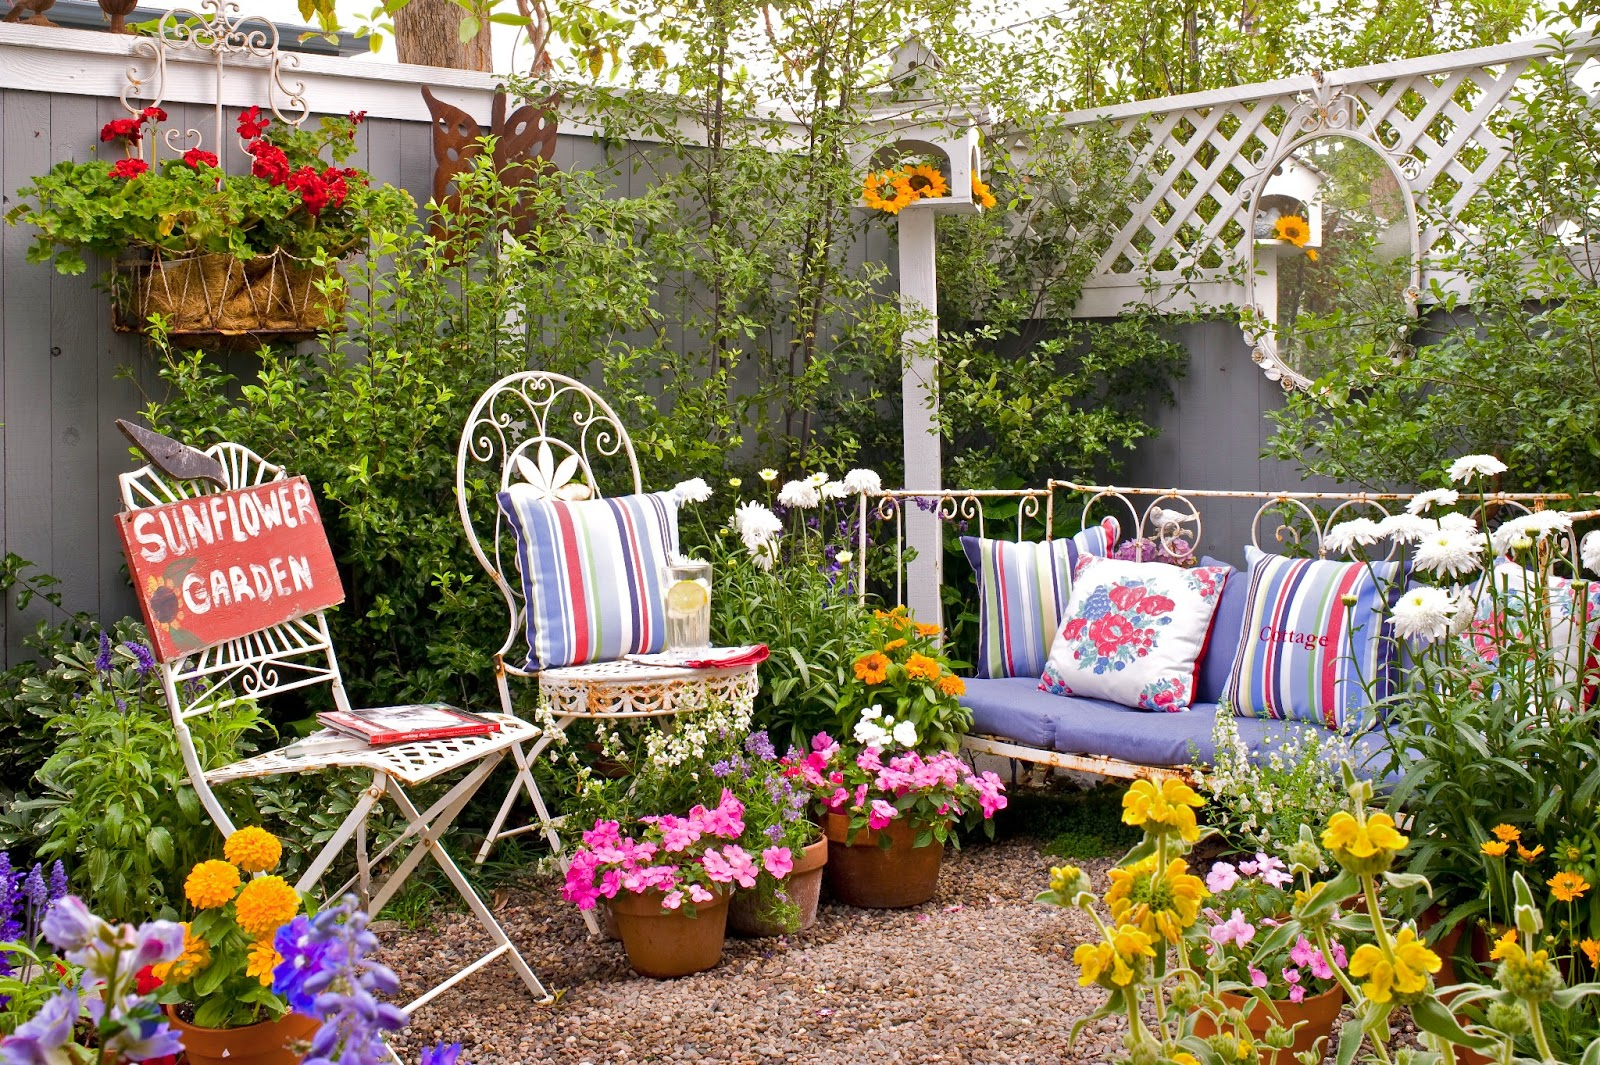 ... In The Article: PLEASE DO NOT PIN OR USE ANY OF THE PHOTOS ON THIS POST  AS THEY WERE TAKEN BY MICHAEL GARLAND FOR FLEA MARKET GARDENS MAGAZINE.